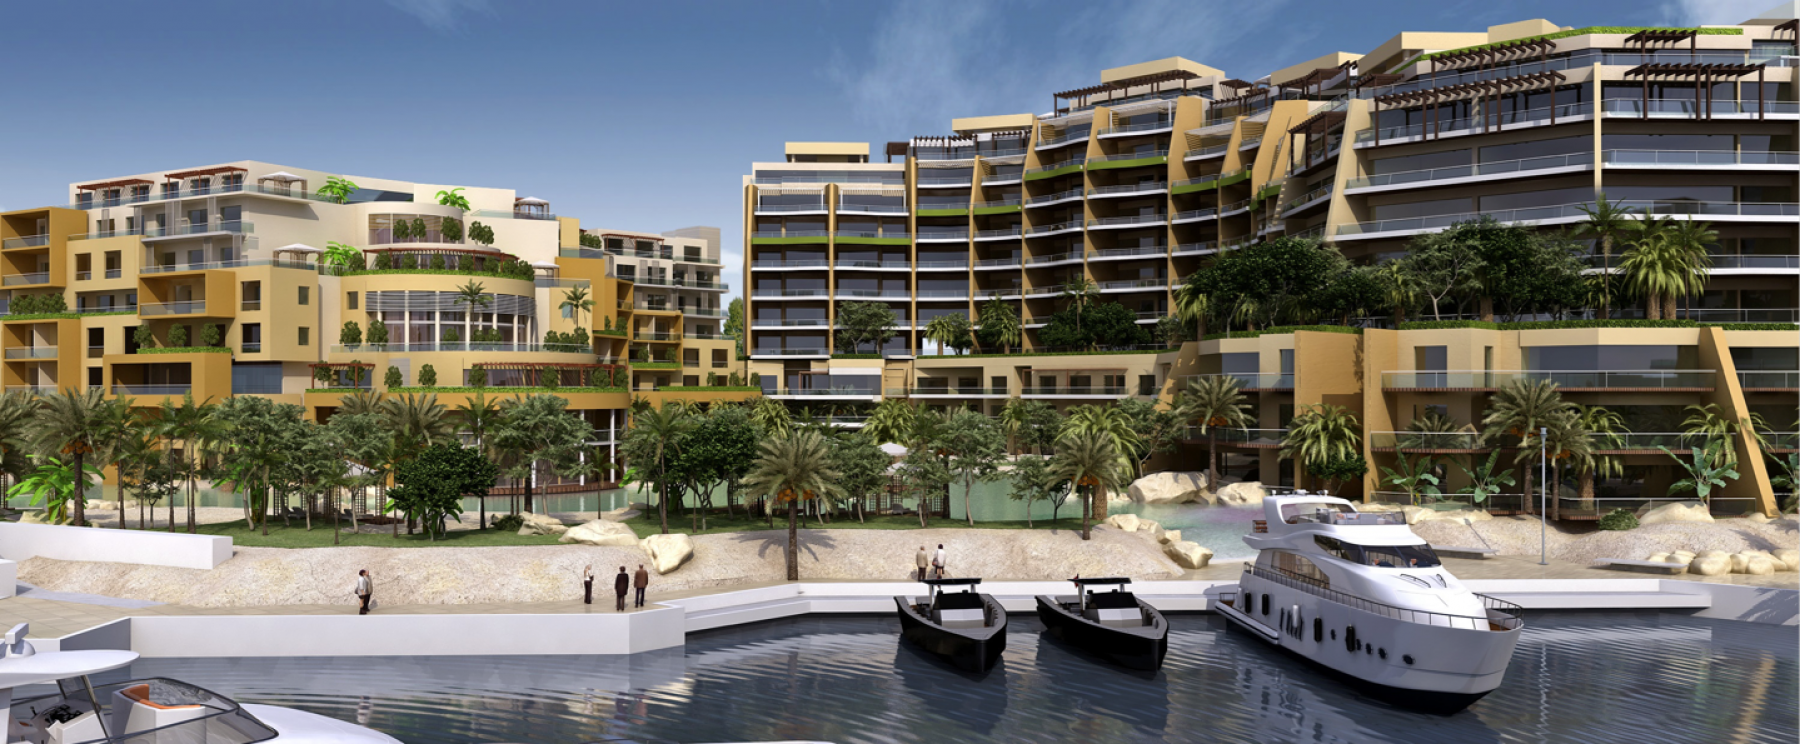 Hotel & Apartments – Palm Waterfront